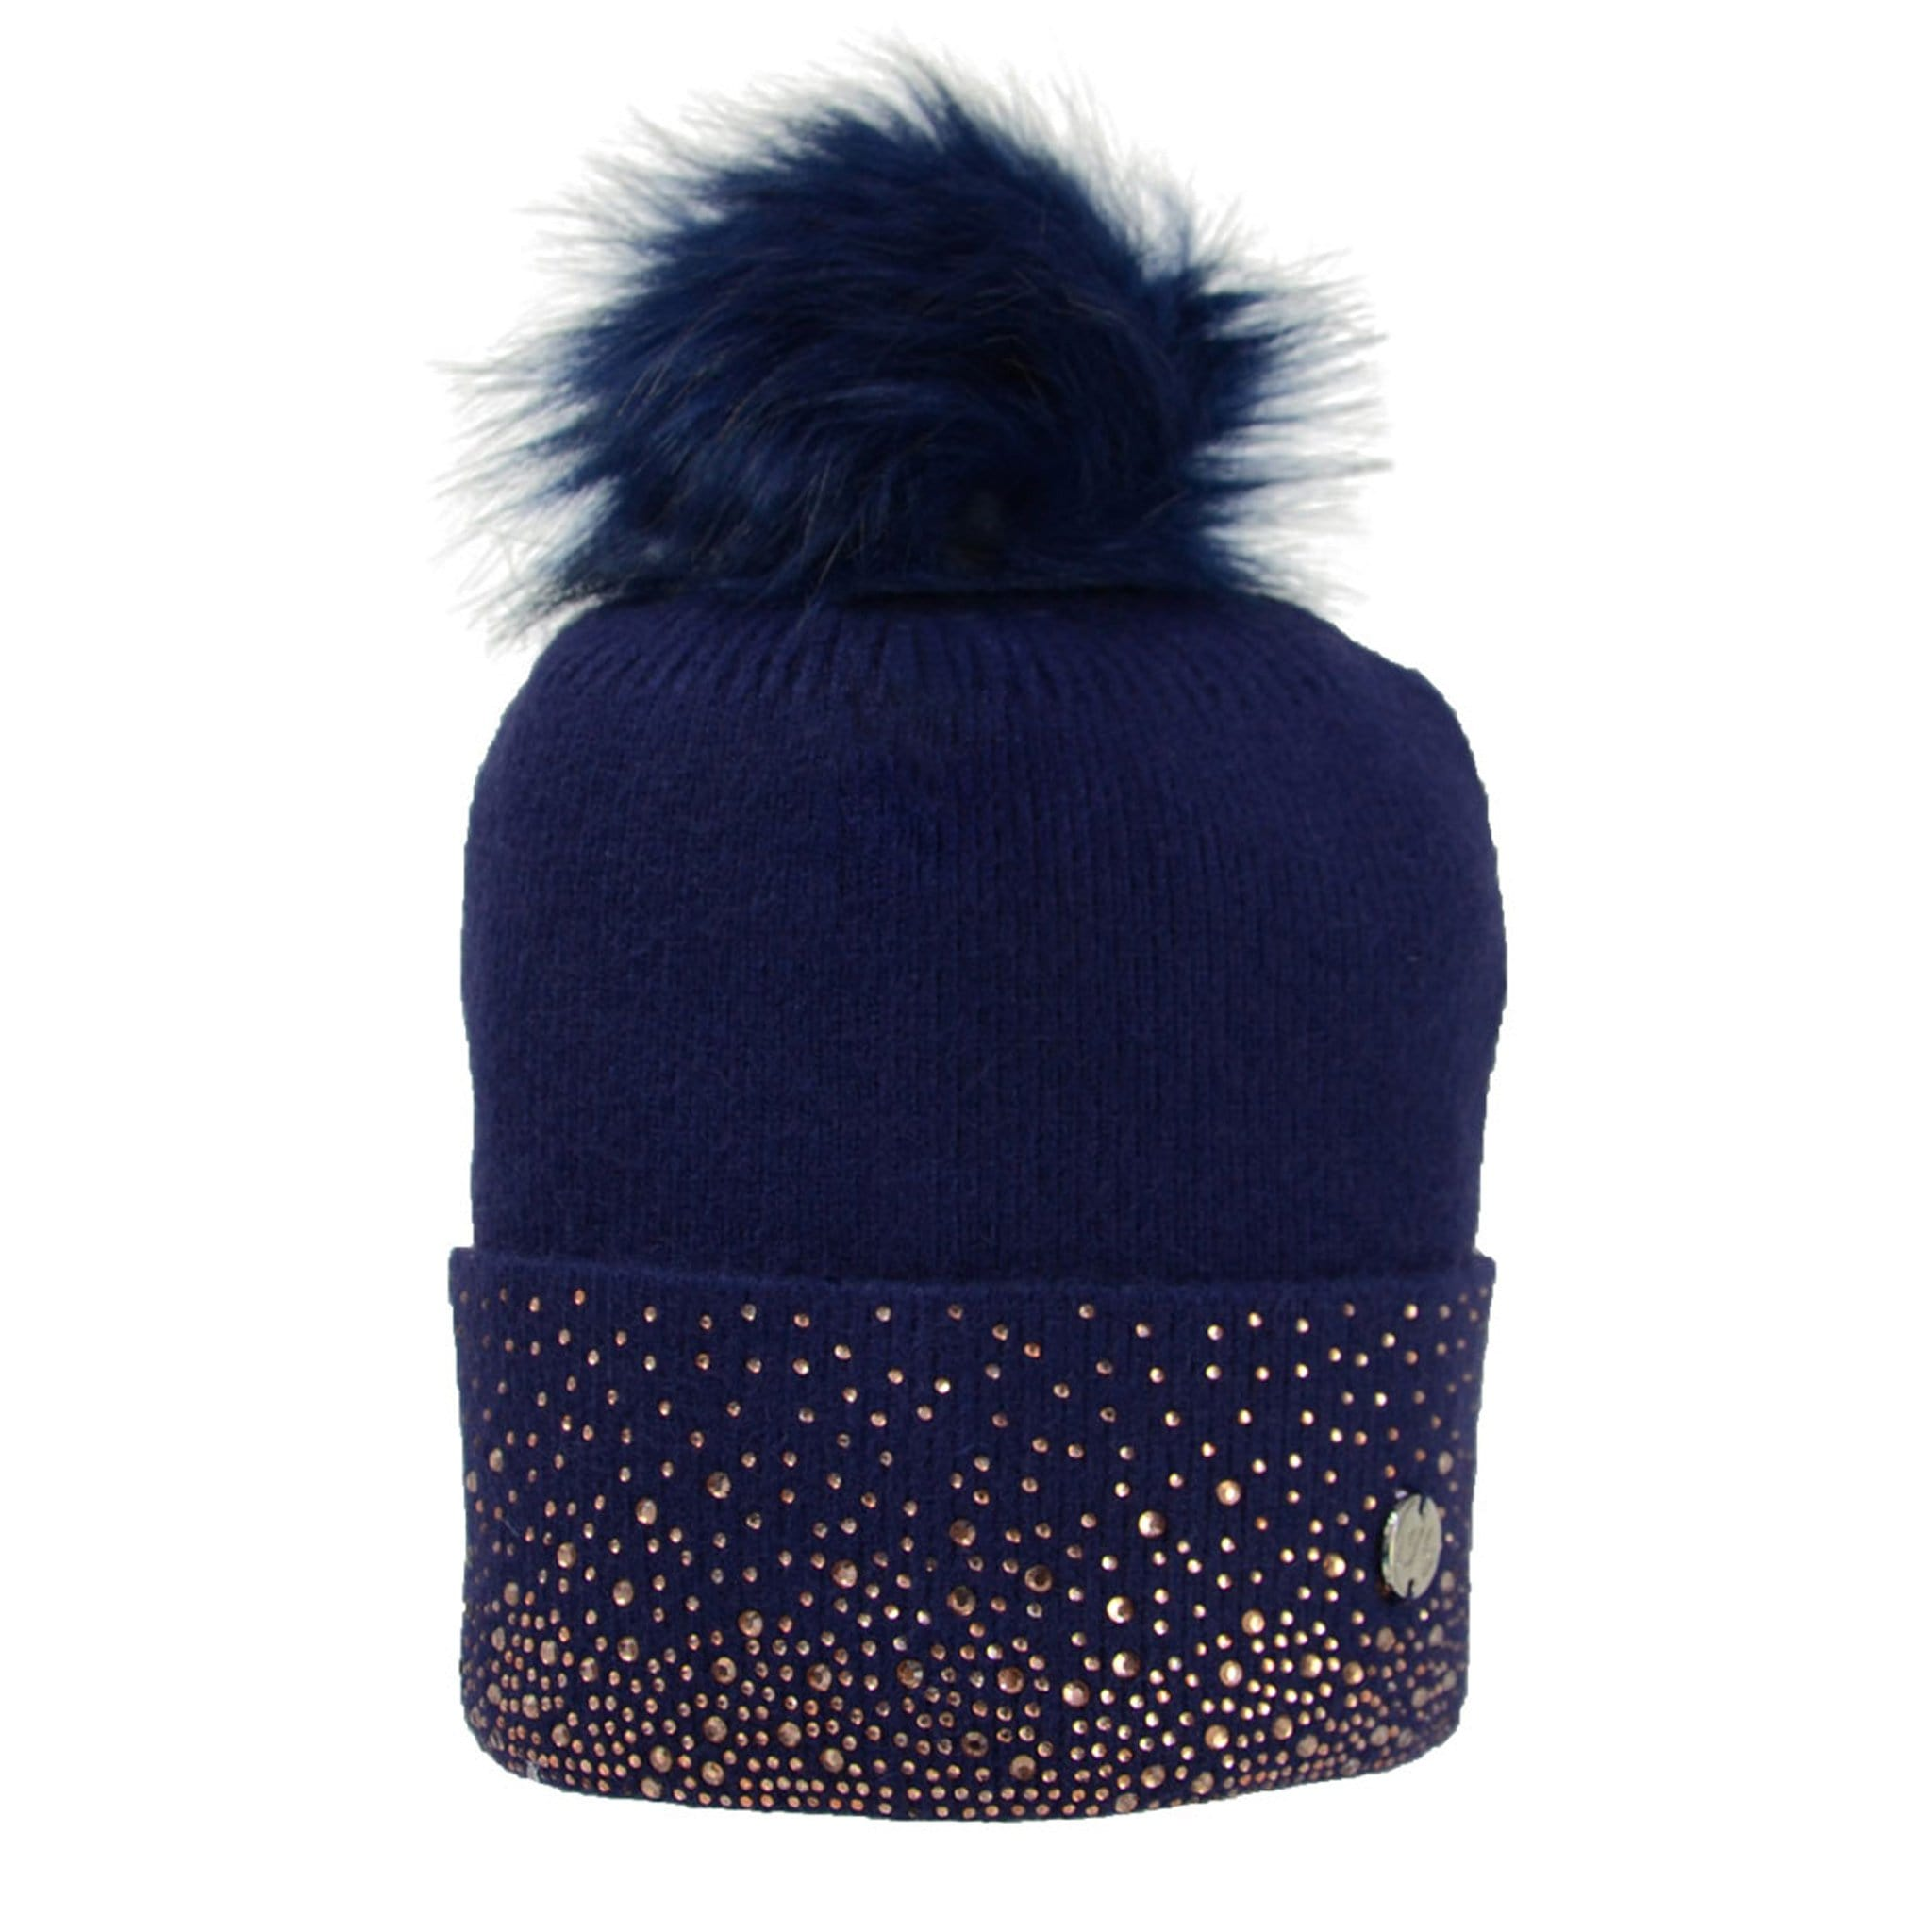 HyFASHION Two Toned Alaska Bobble Hat Navy 24322.